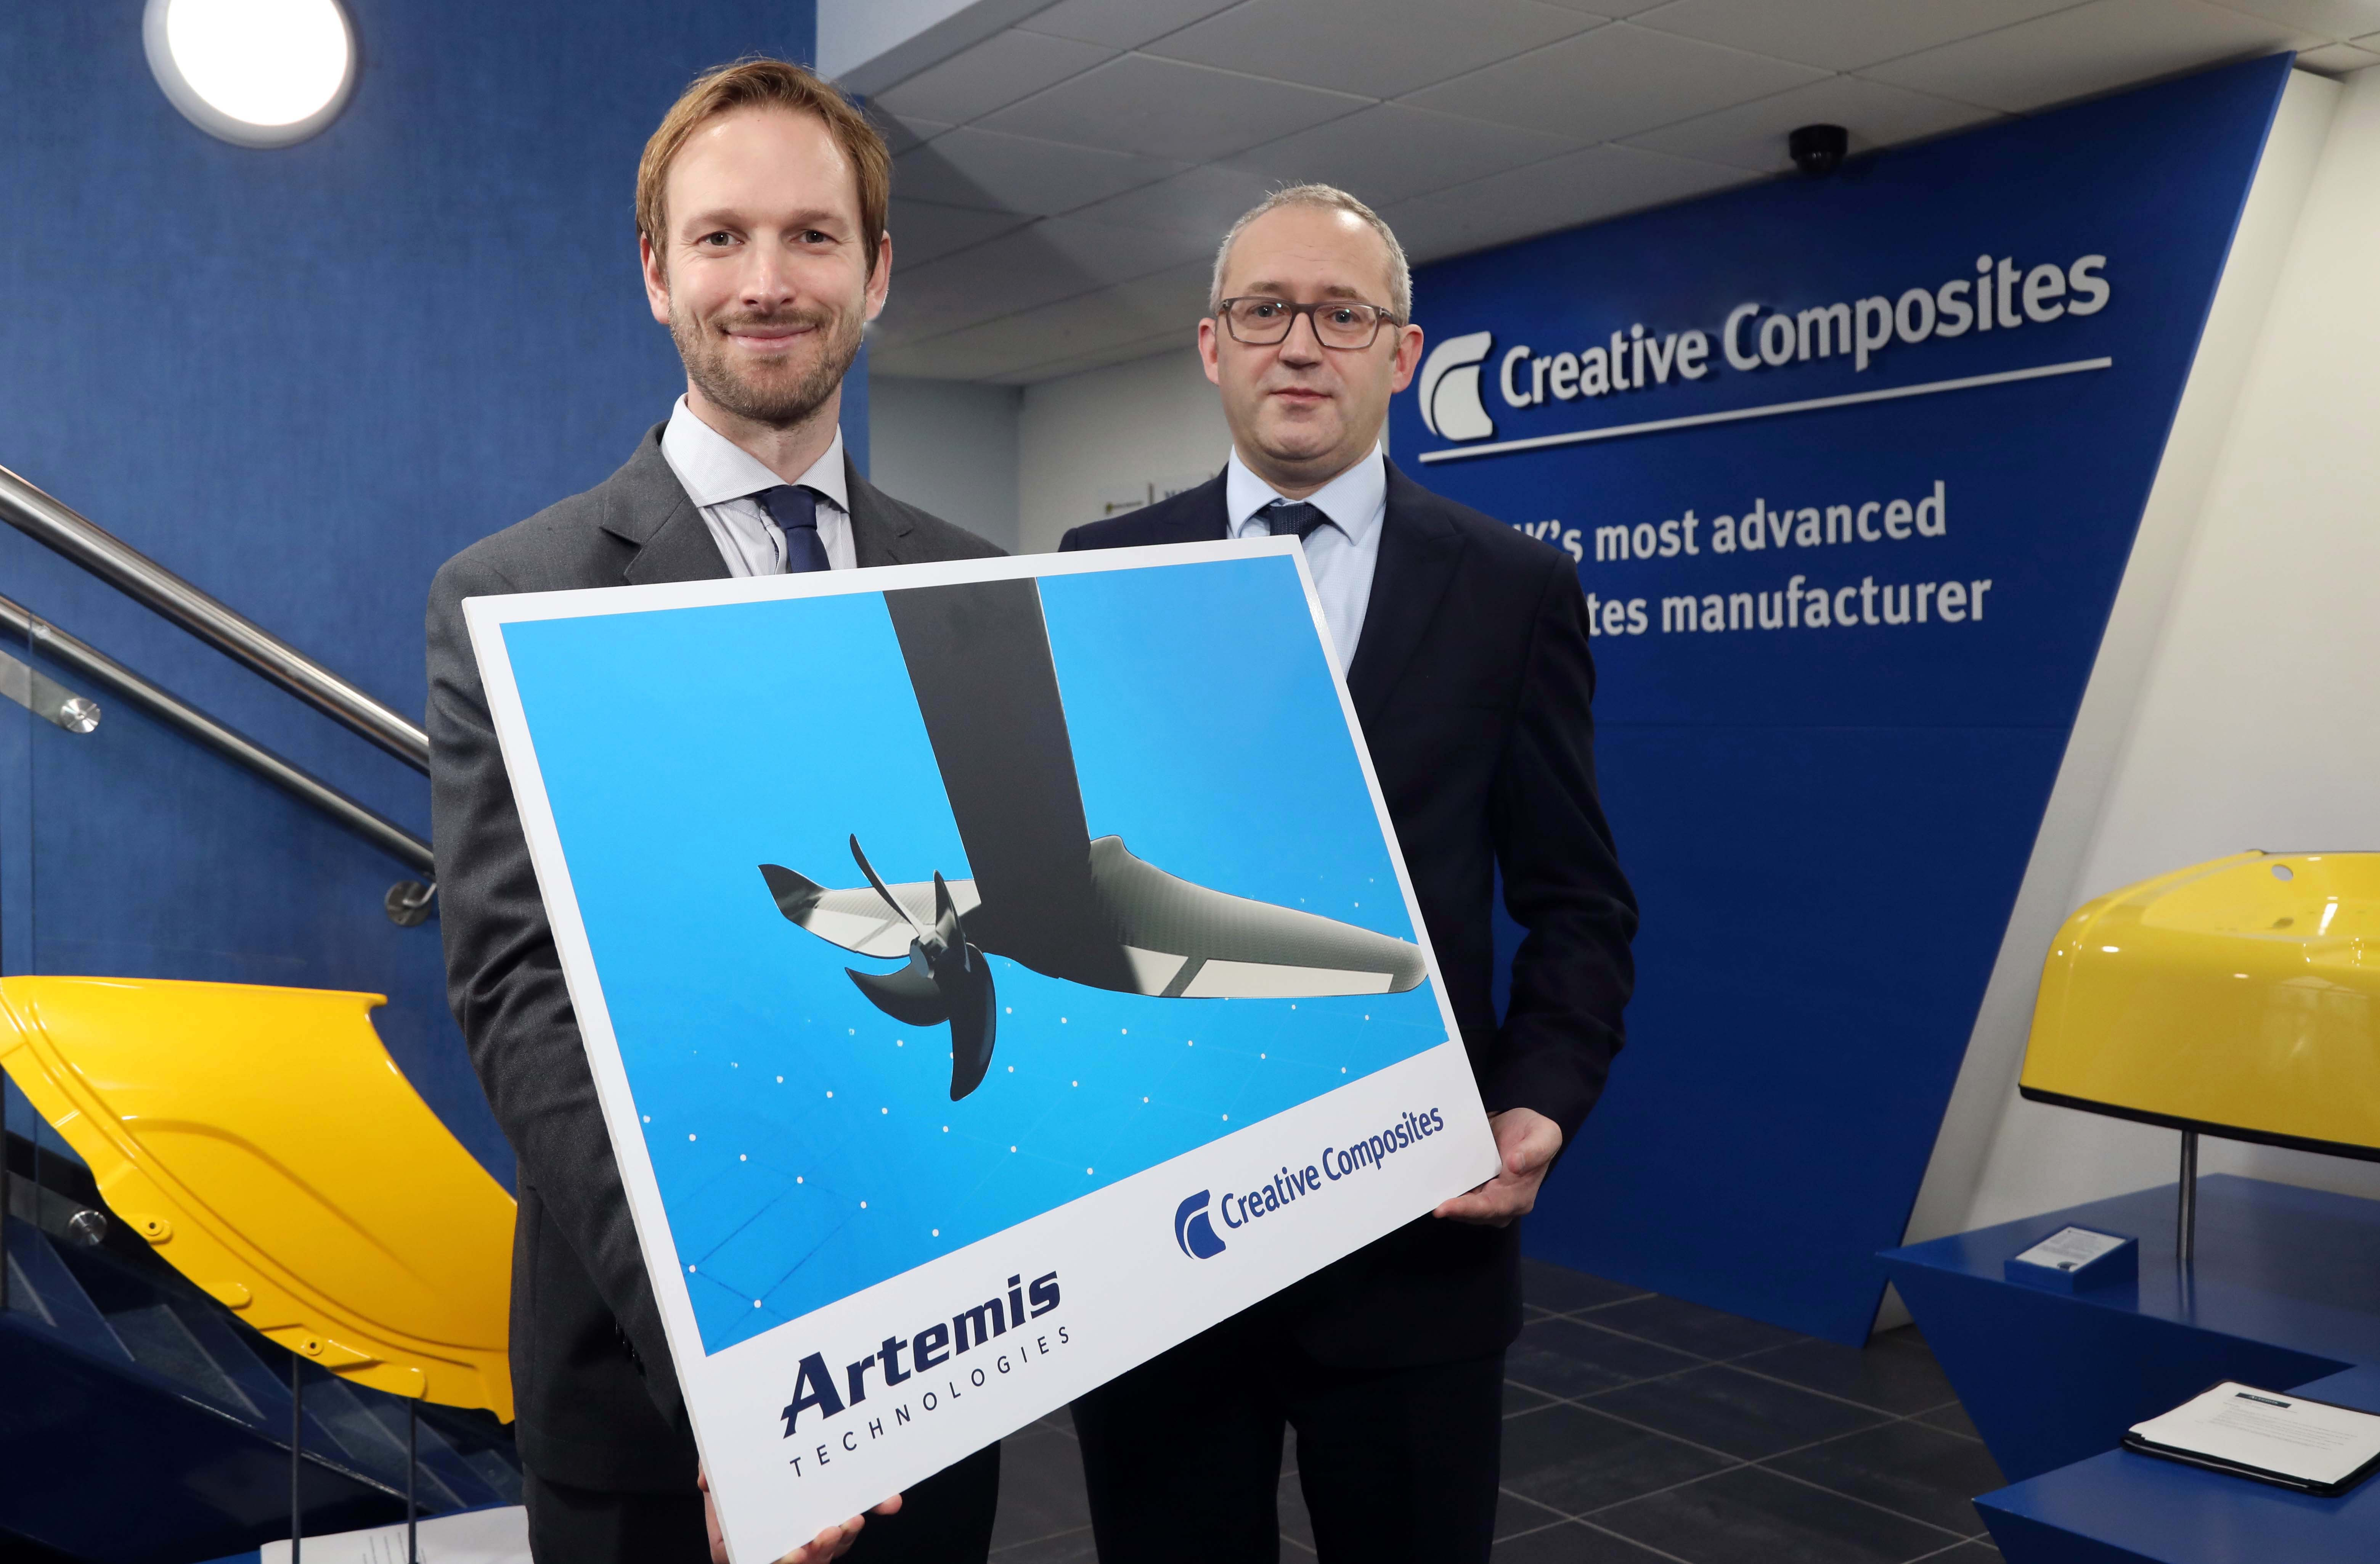 Artemis Technologies partners with Creative Composites